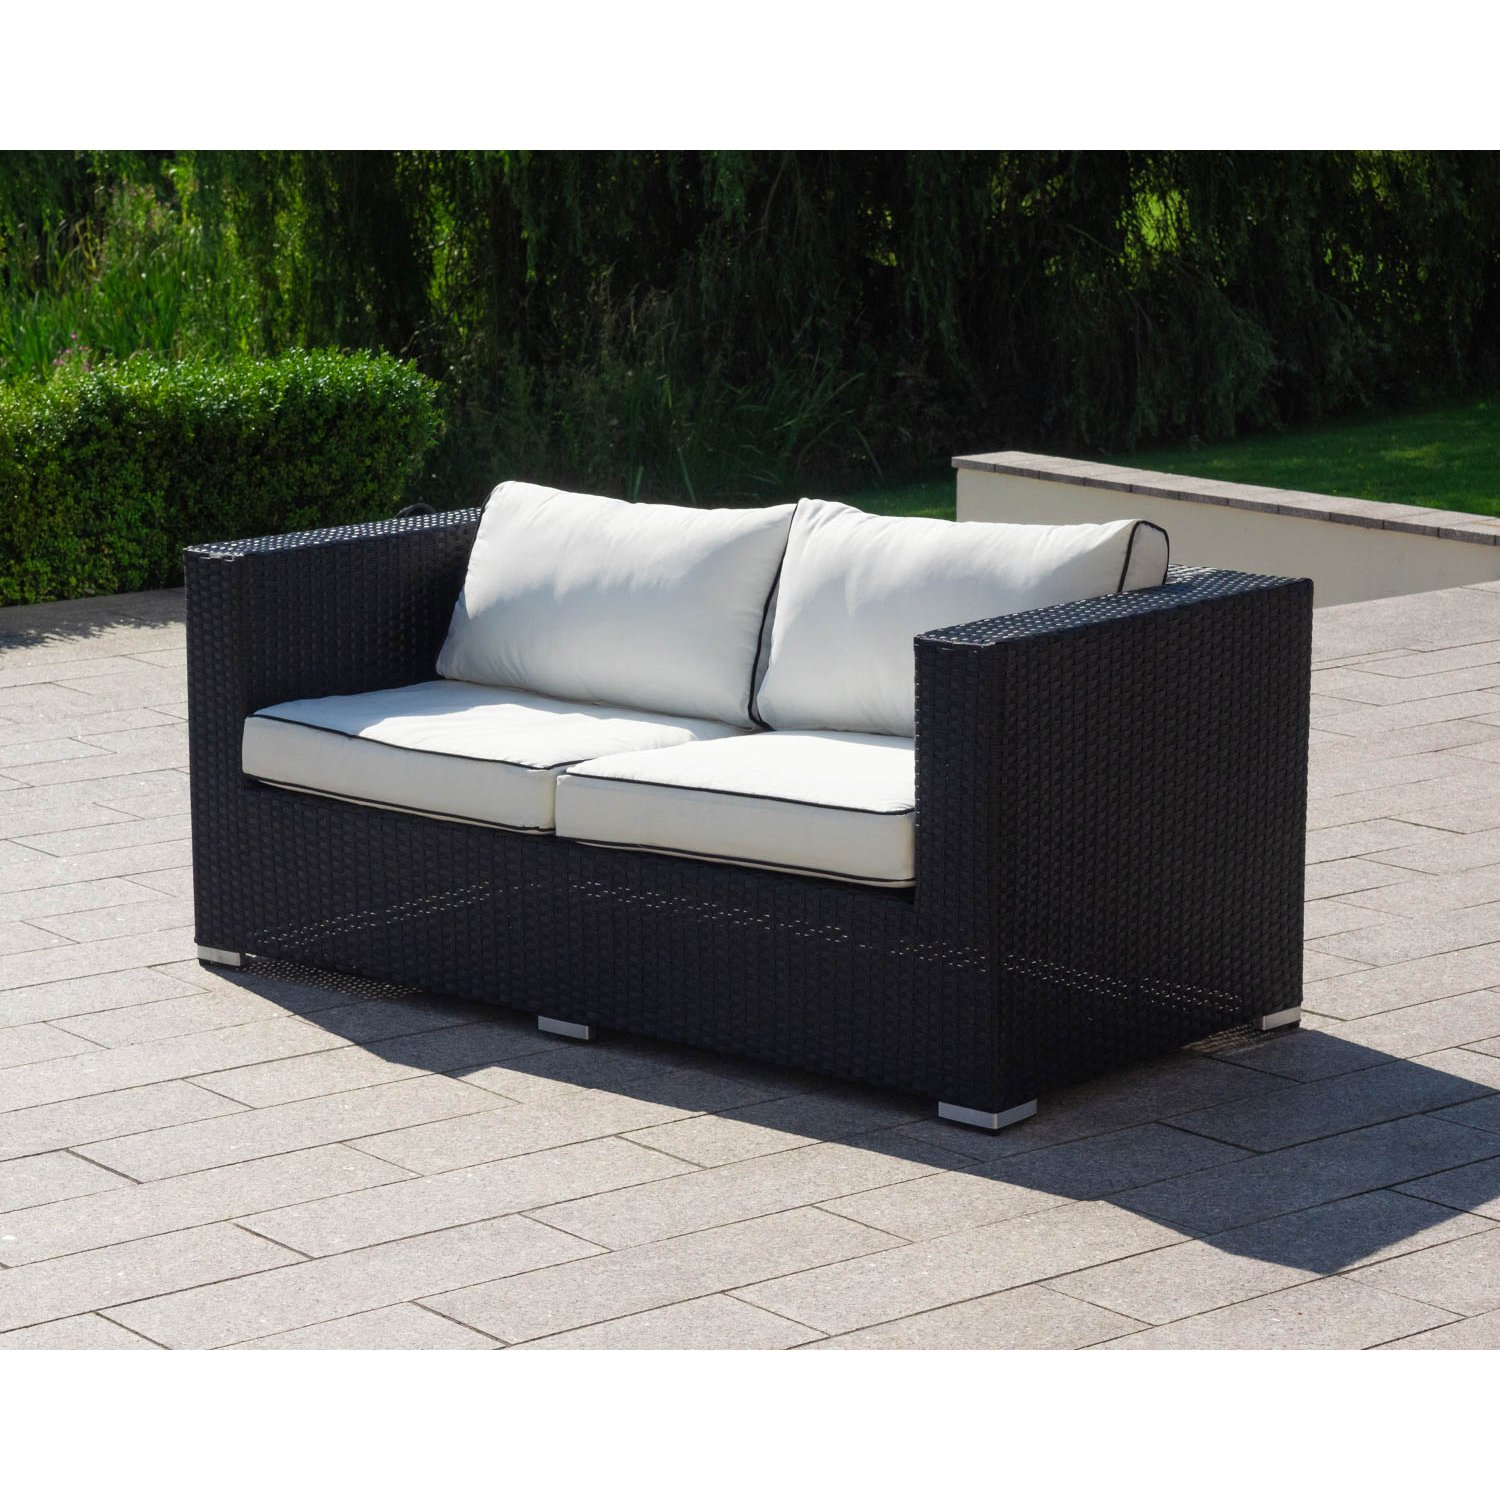 image-Ascot 2 Seat Rattan Garden Sofa in Black and Vanilla